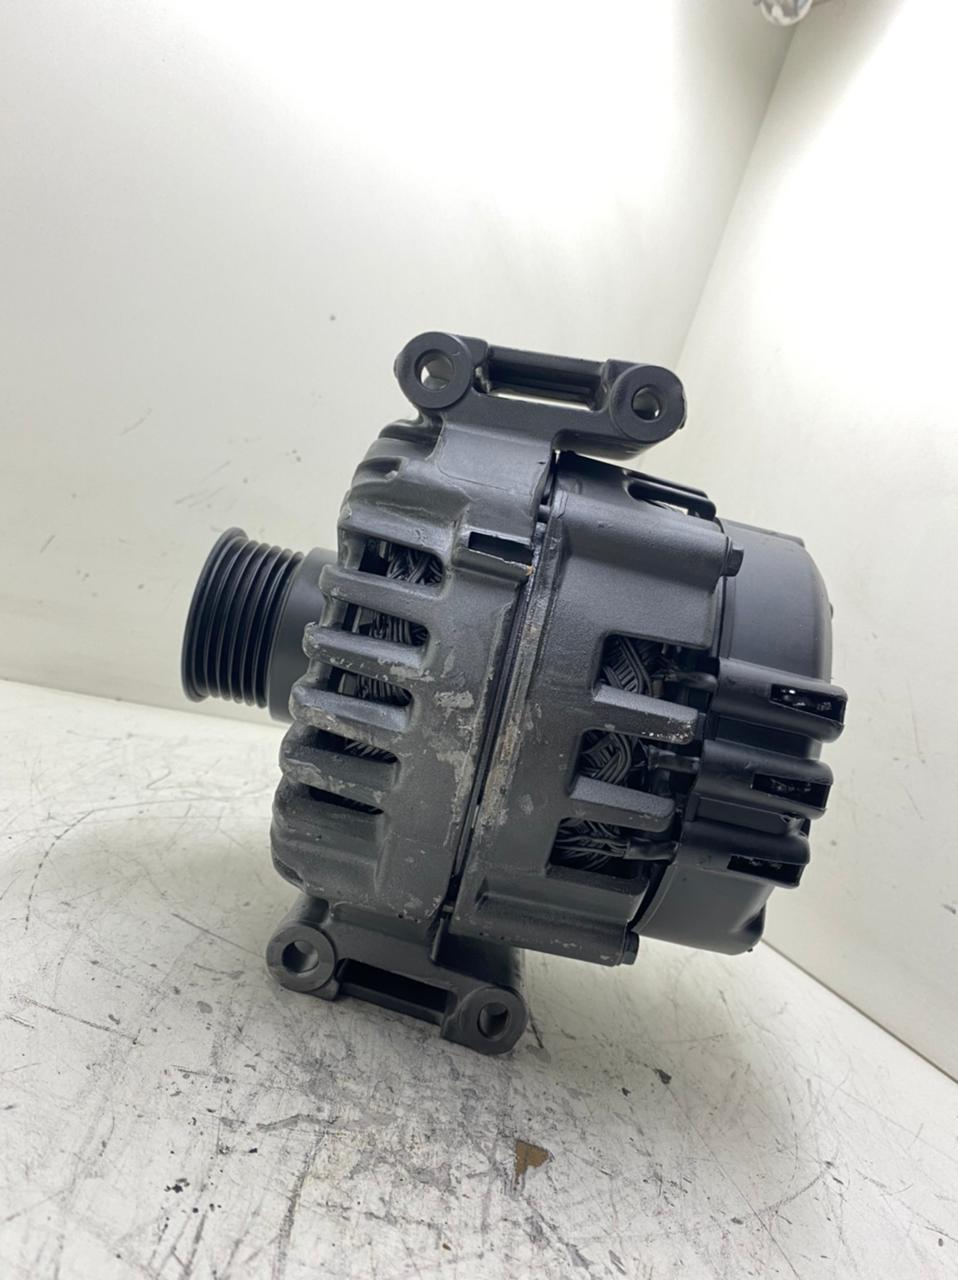 Alternador Valeo Mercedes Sprinter W907 910 14V A6519065700 CG25SO54 2723837A 418004046 18W45 Q1250A